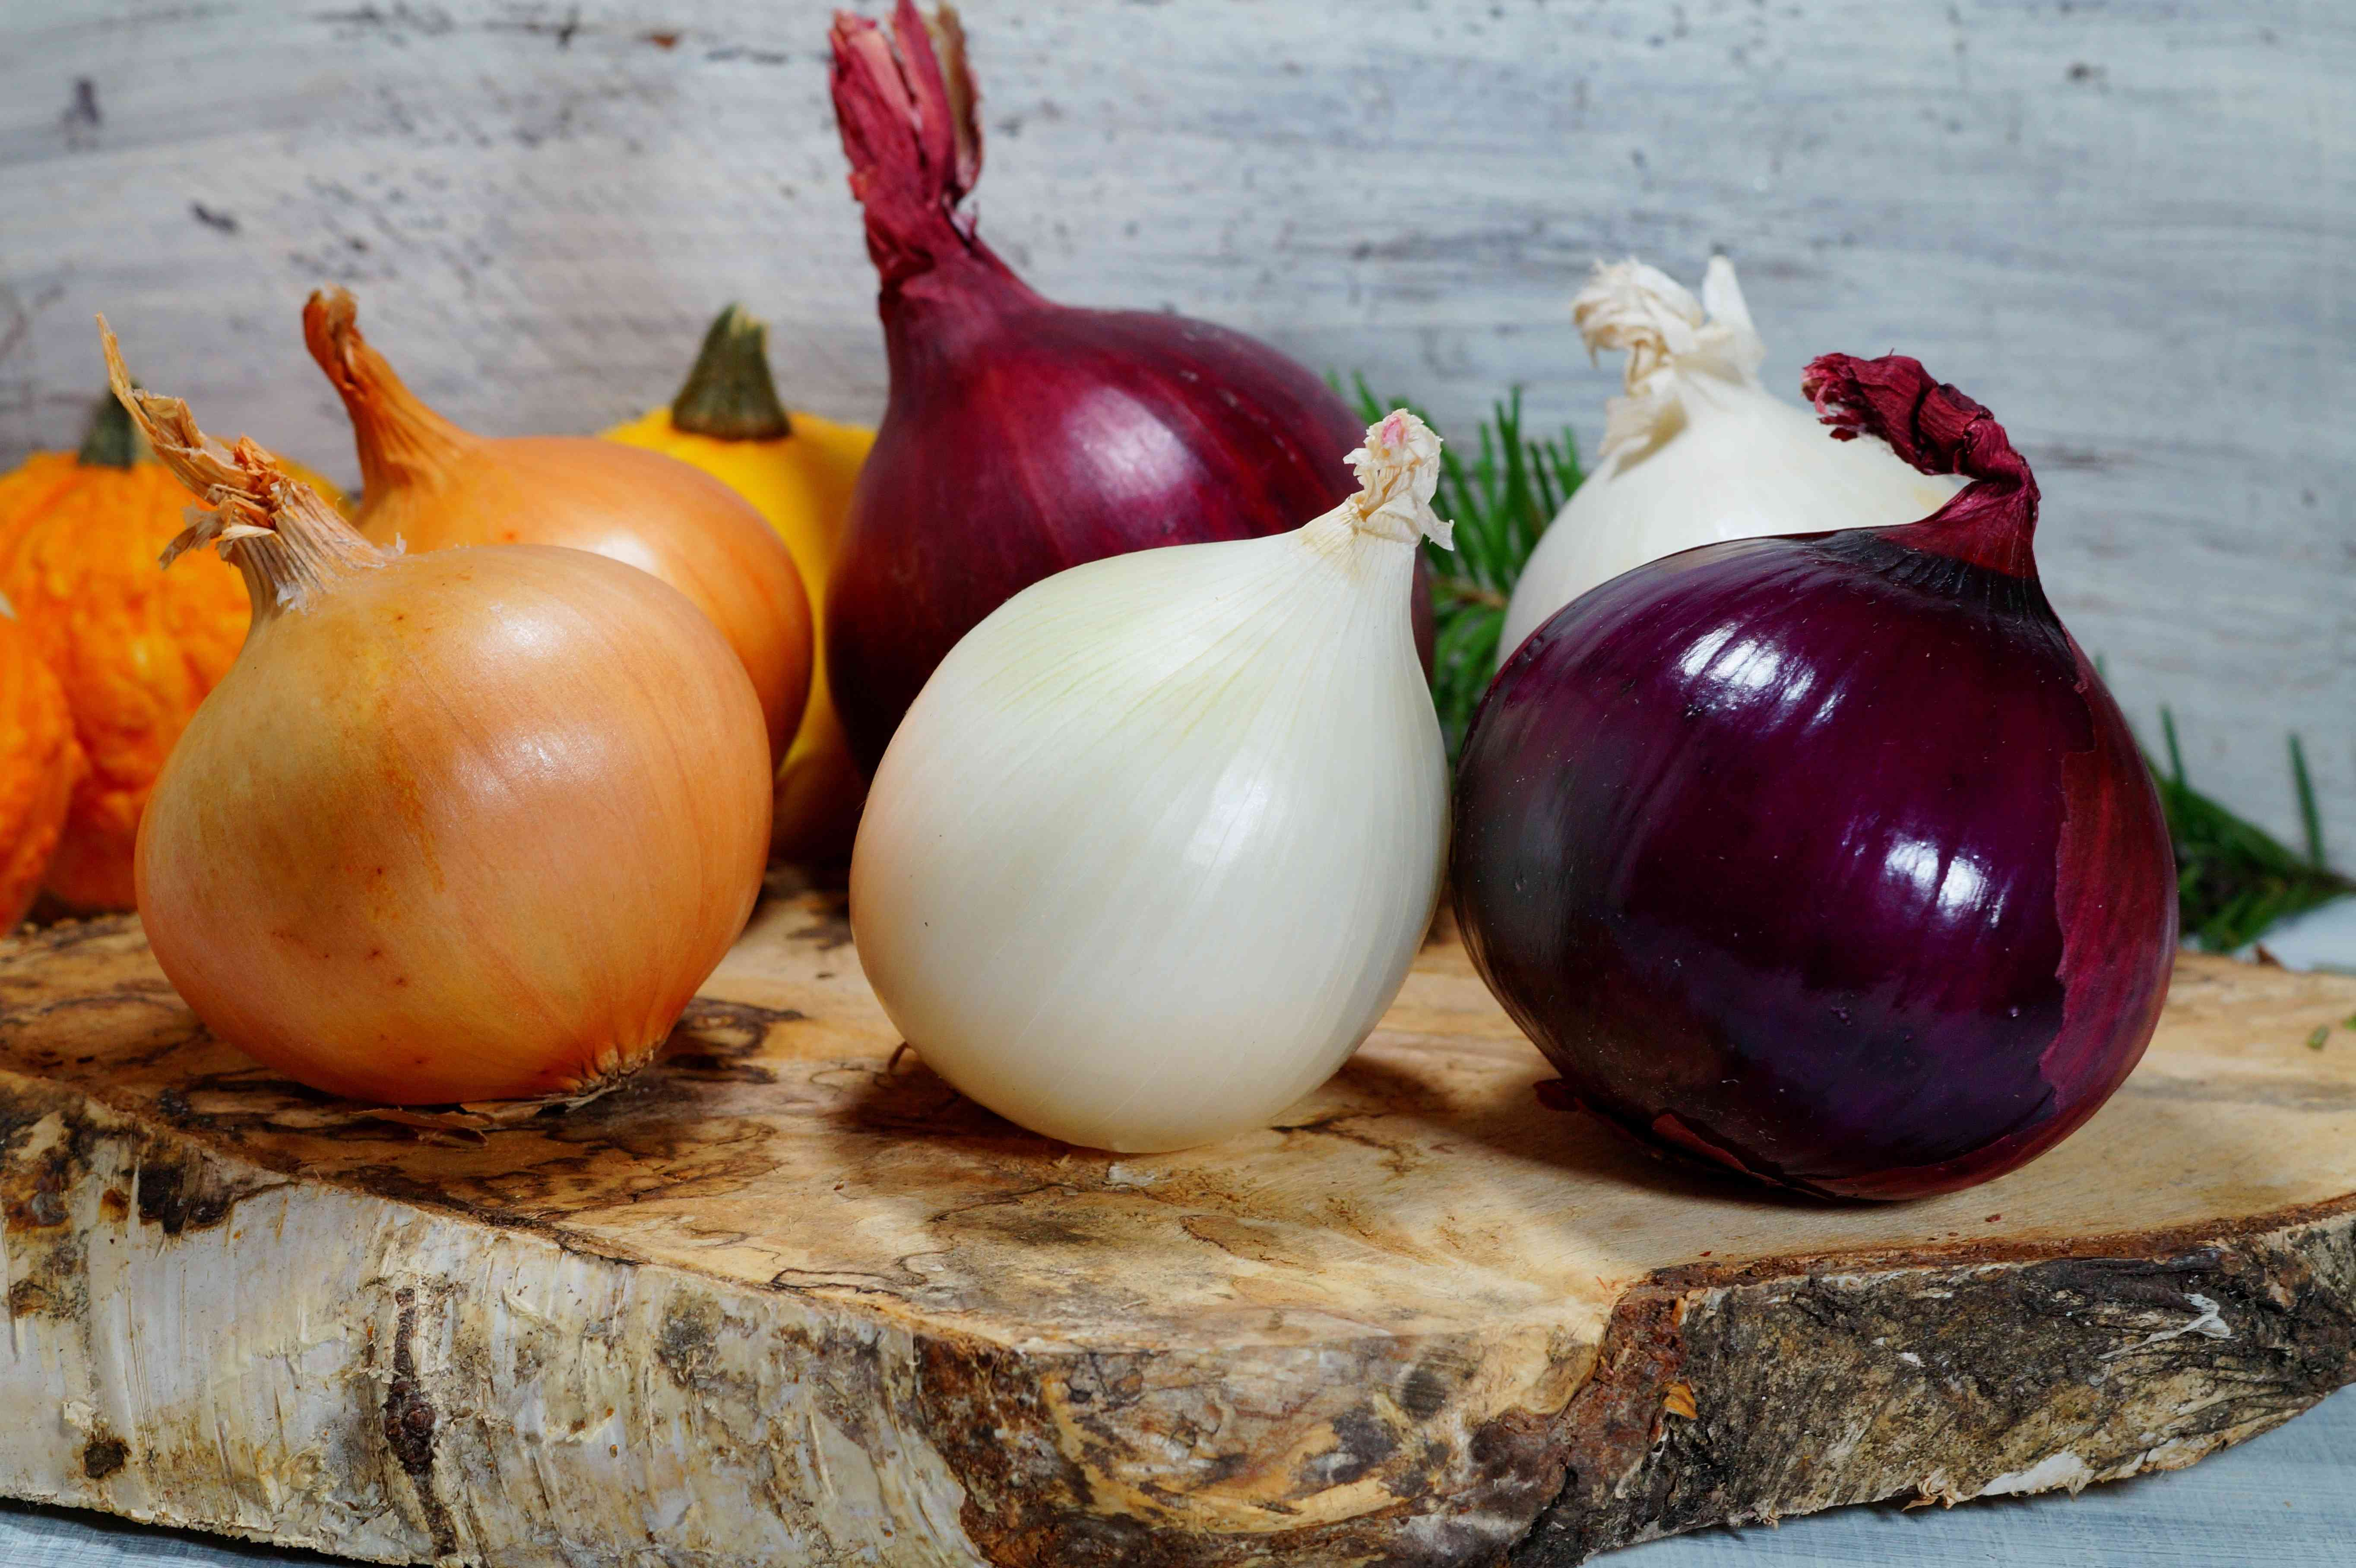 white, yellow, and red onions on a natural wood cutting board